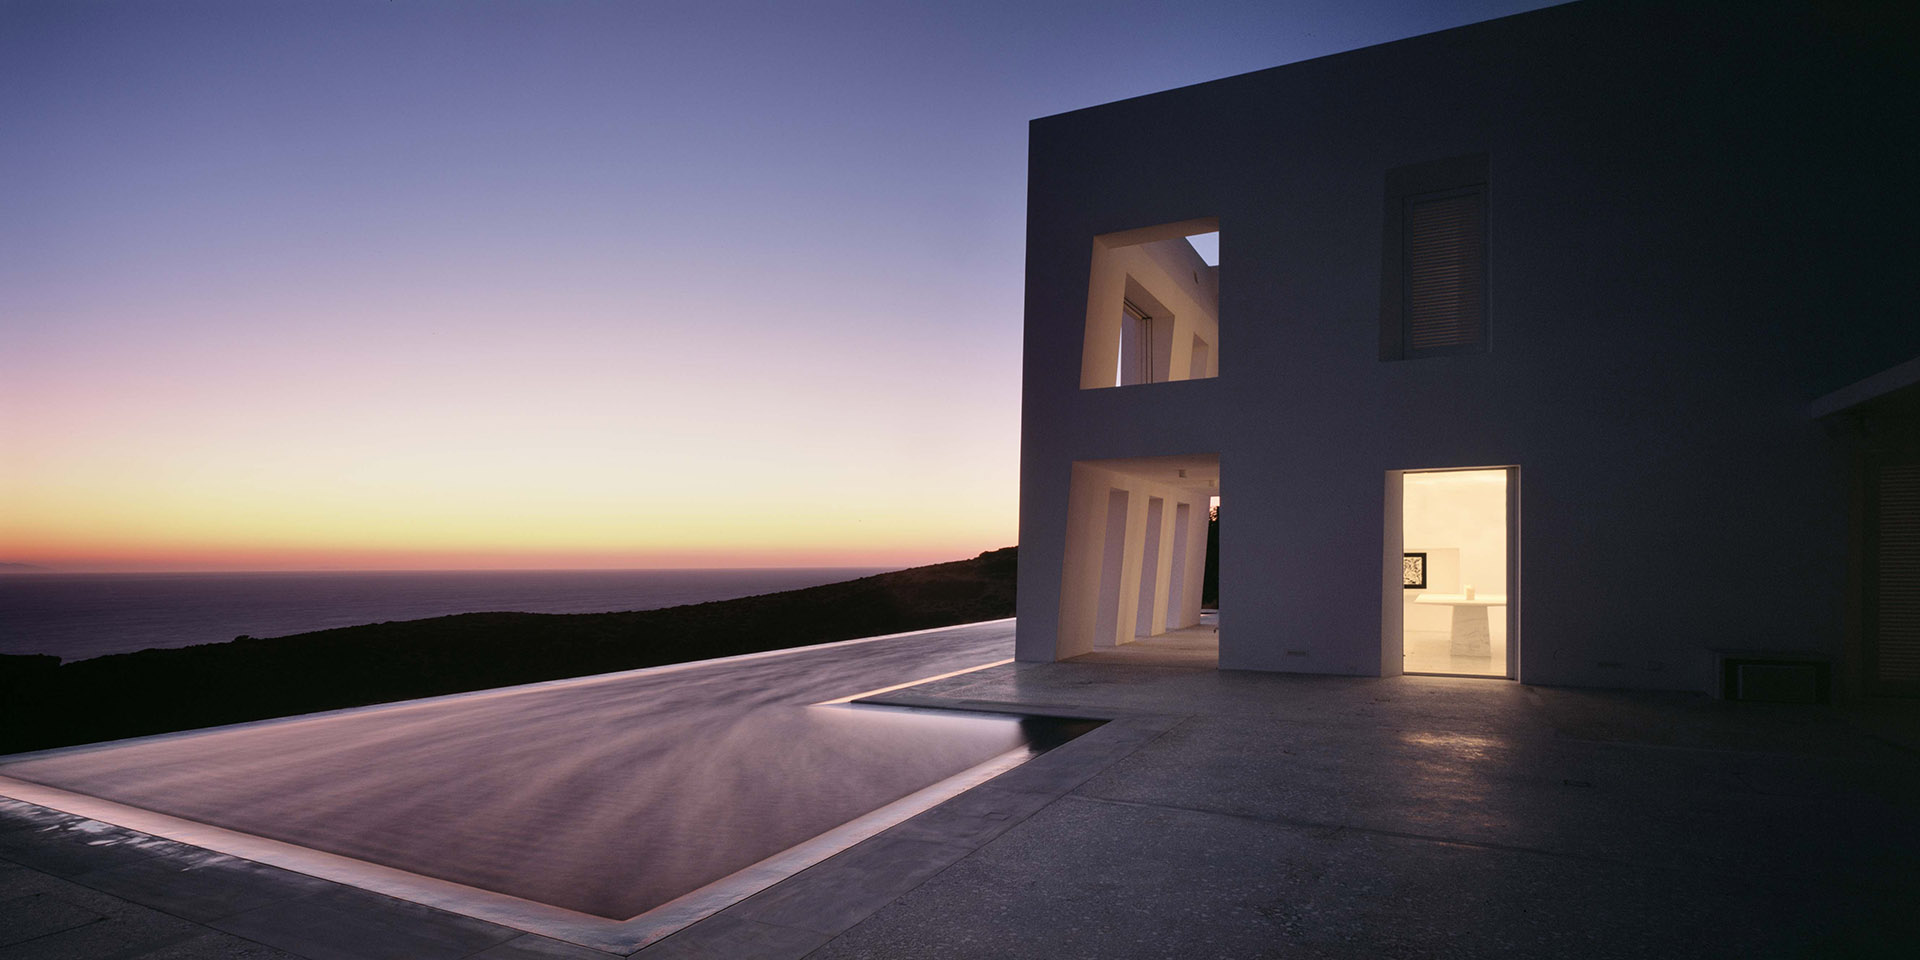 Act of balance between human experience and the environment. A villa as a temple to the sun and the culture of the Greek islands